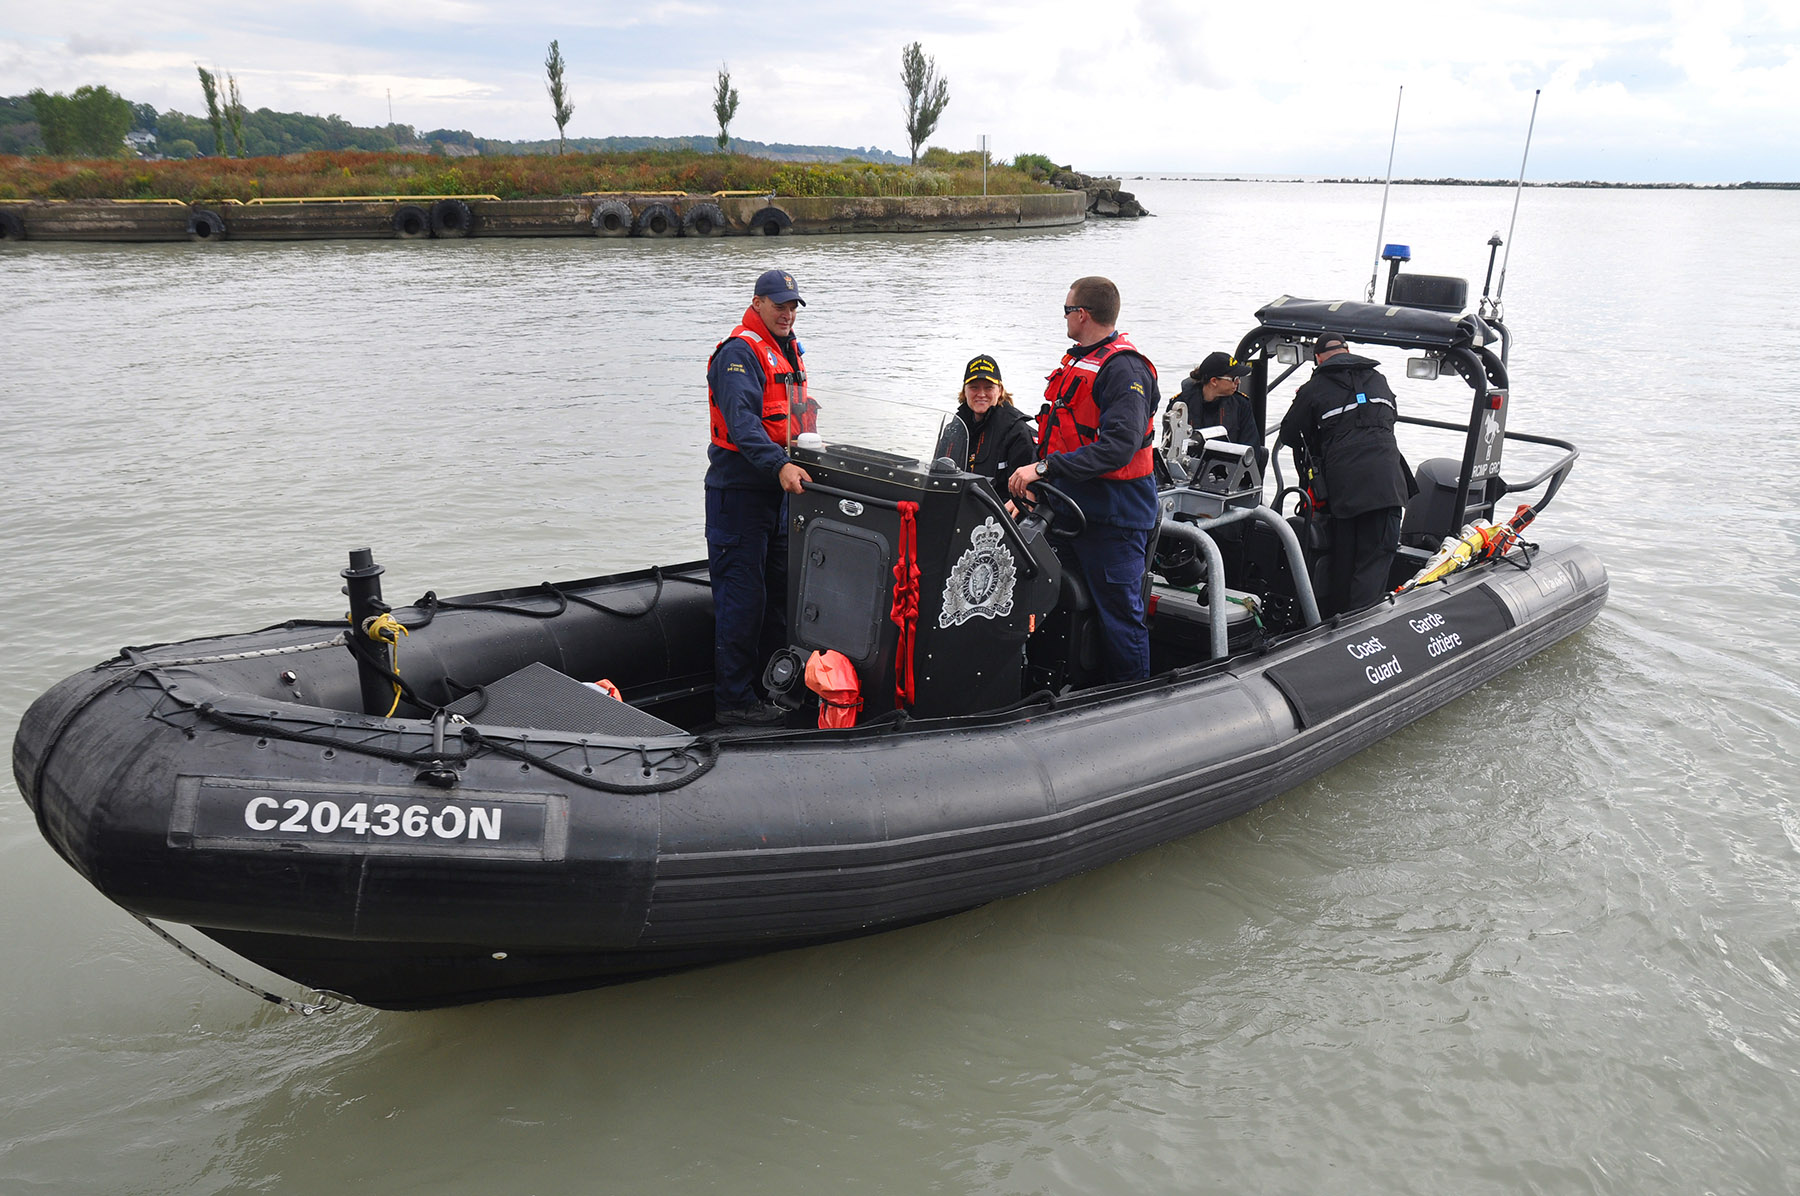 Commodore Mulkins, Commander, Naval Reserve (center) on a joint Canadian Coast Guard / RCMP rigid hulled inflatable boat during Exercise ERIE VALOUR.